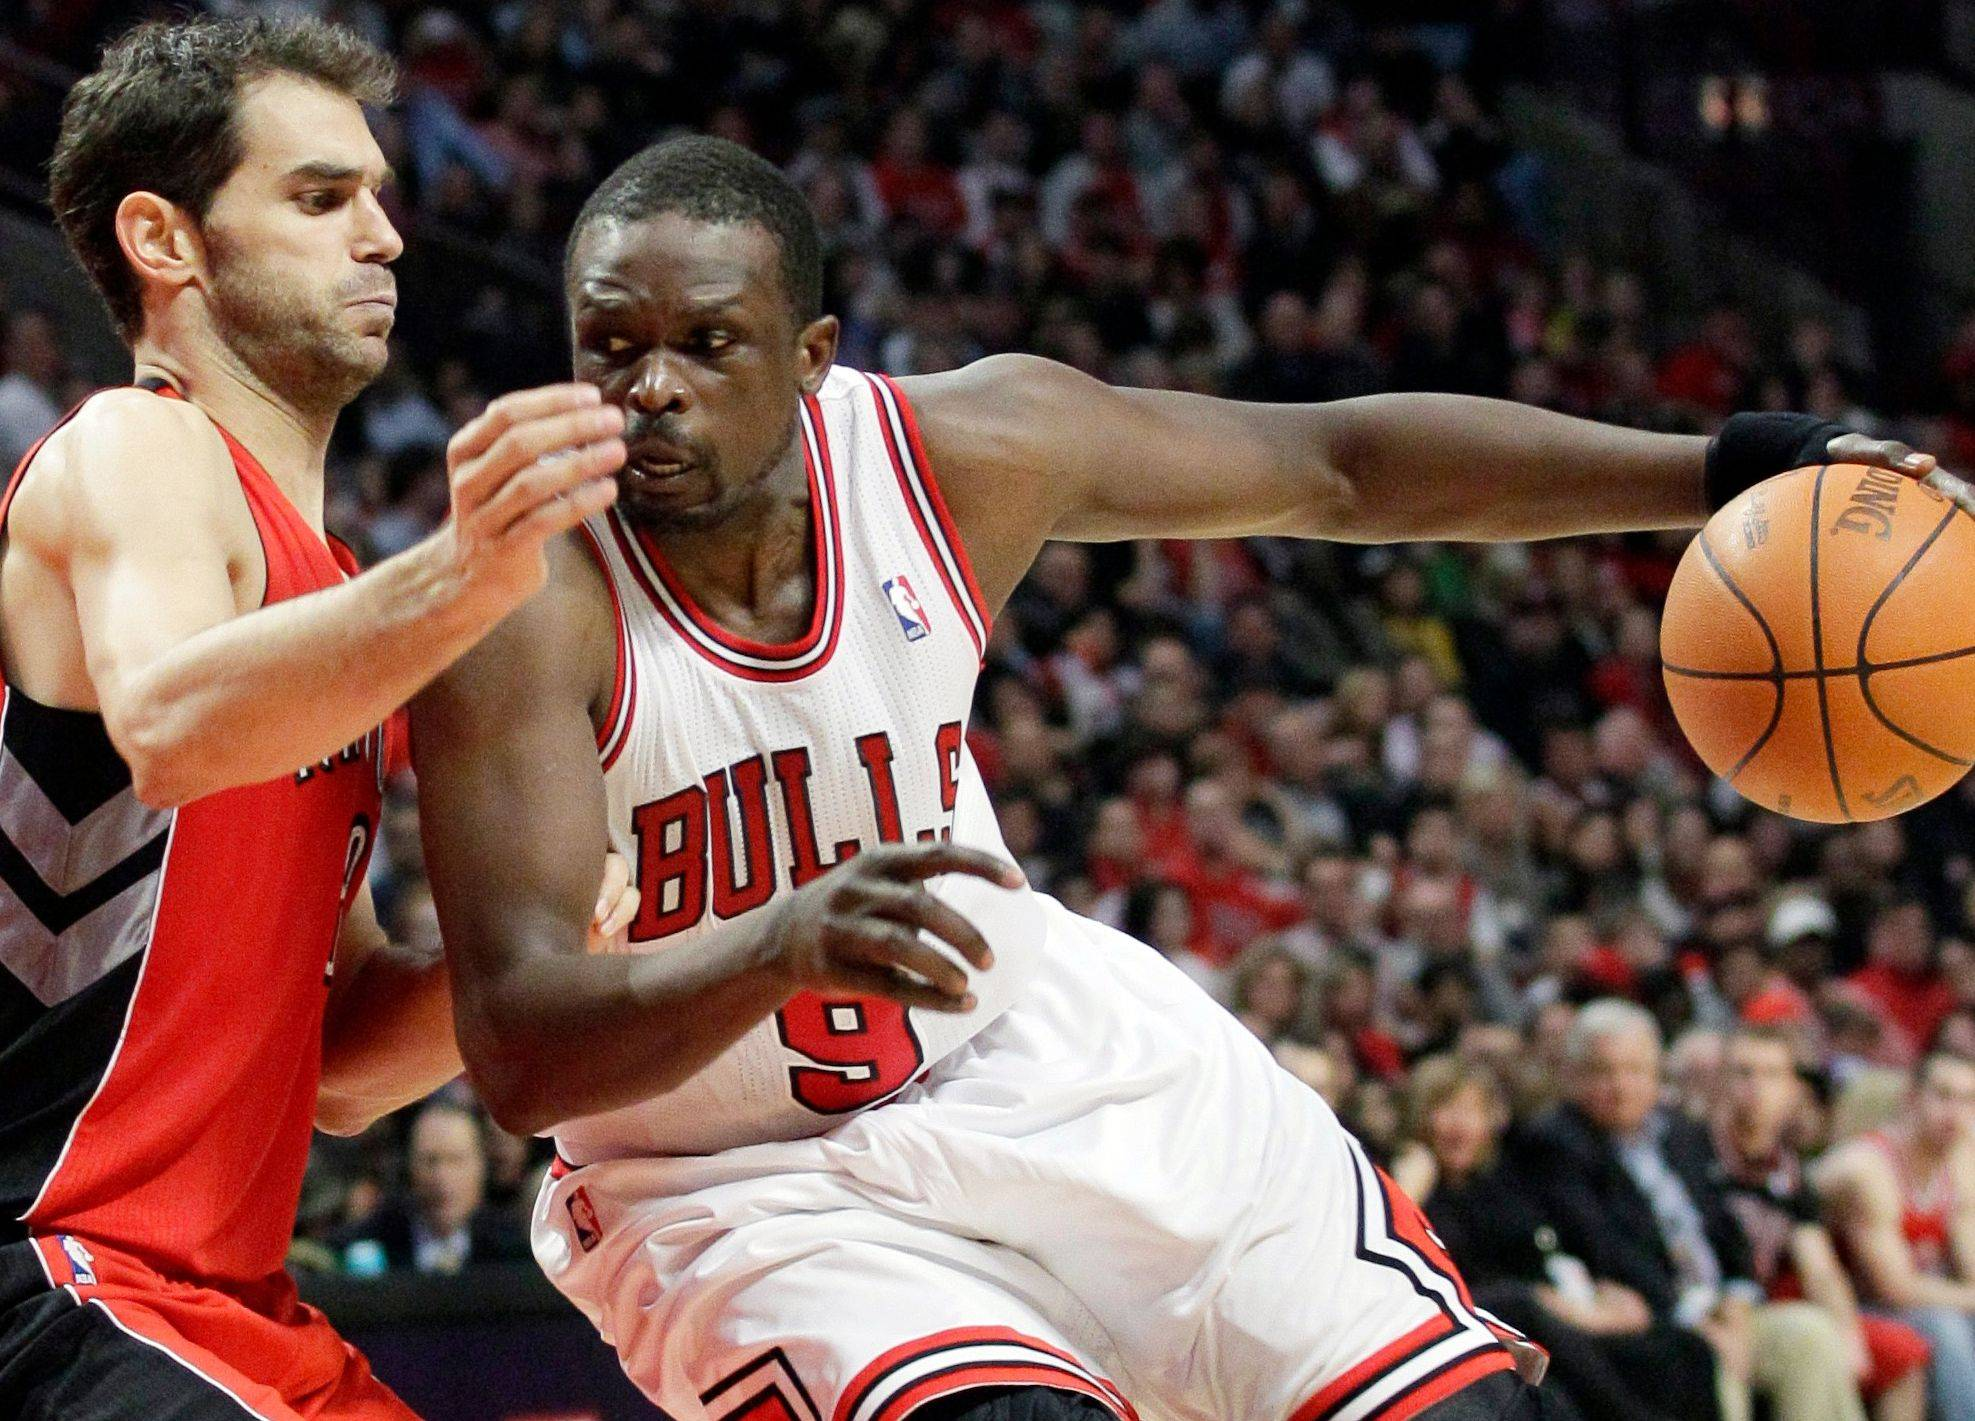 Luol Deng backs down Jose Calderon during the second half of the Bulls' victory Saturday.